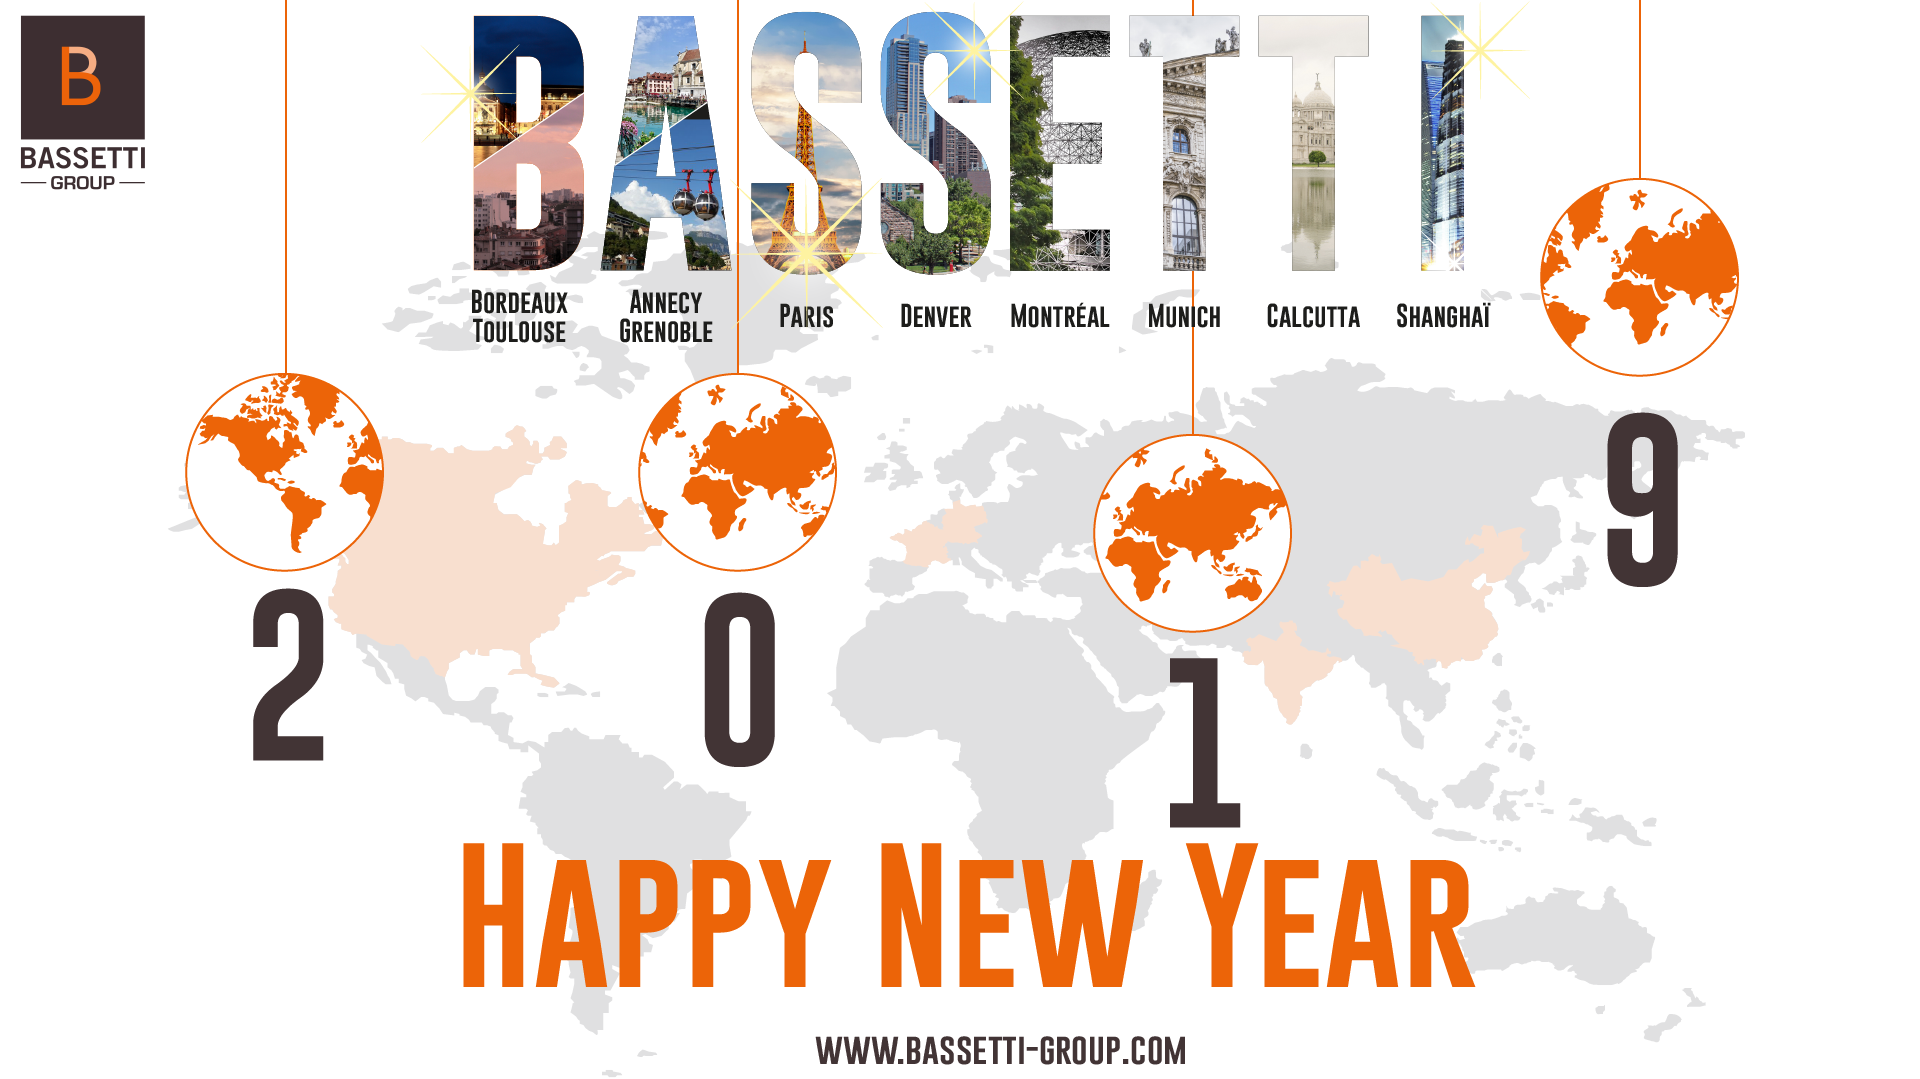 BASSETTI Data Provider wishes you a great 2019 year